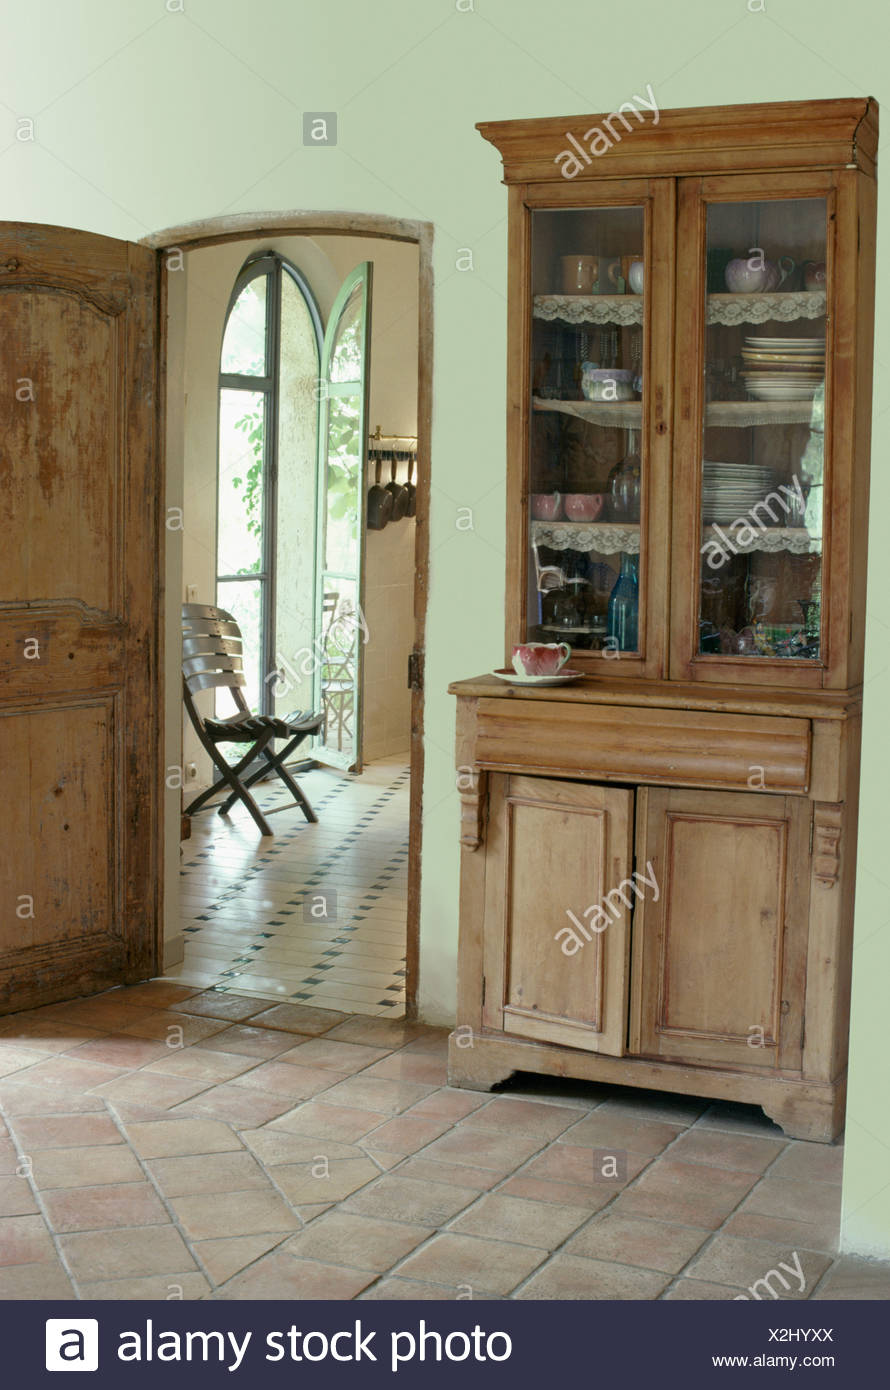 Antique glass front dresser in french country hall with terracotta antique glass front dresser in french country hall with terracotta floor tiles dailygadgetfo Choice Image